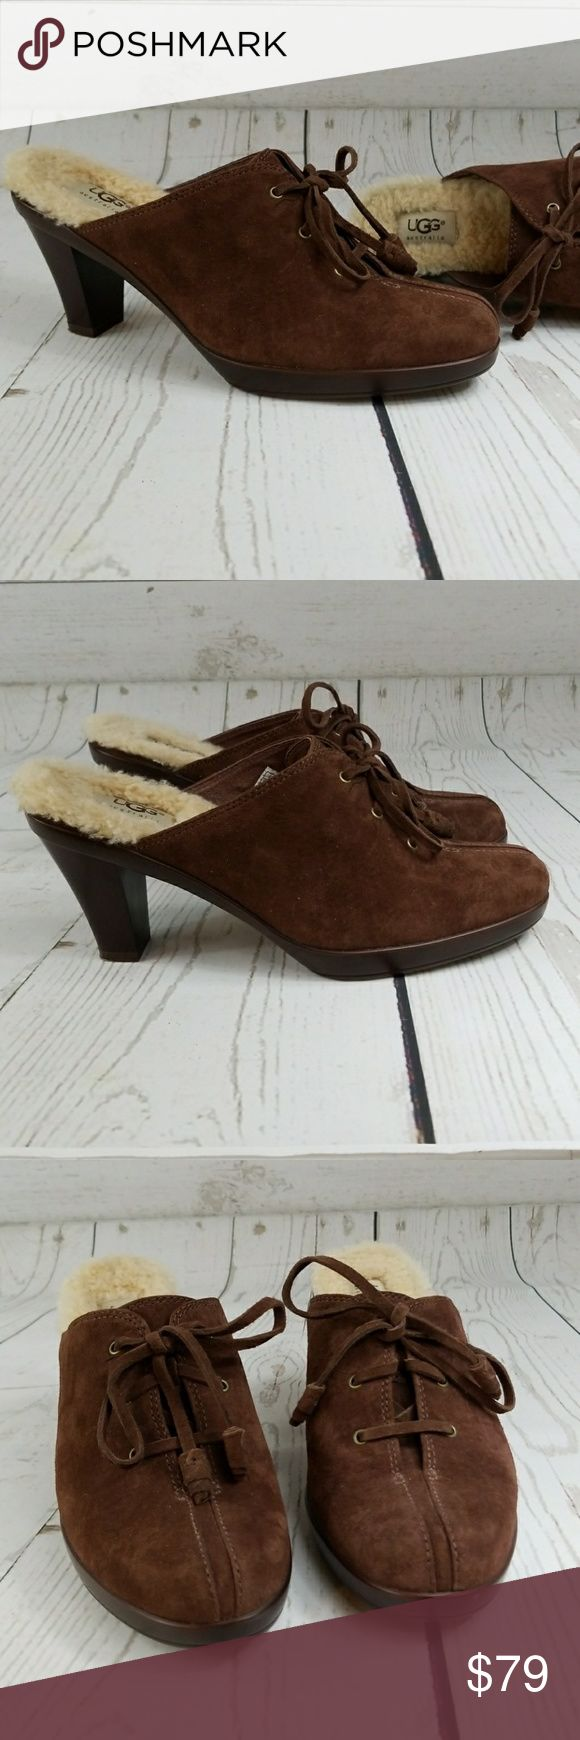 Ugg mules Ugg lace-up mules. Cozy shearling footbed. Cocoa brown suede upper. Nice heel height. Very minor wear on heel cap, otherwise like new condition. Questions welcome. UGG Shoes Mules & Clogs